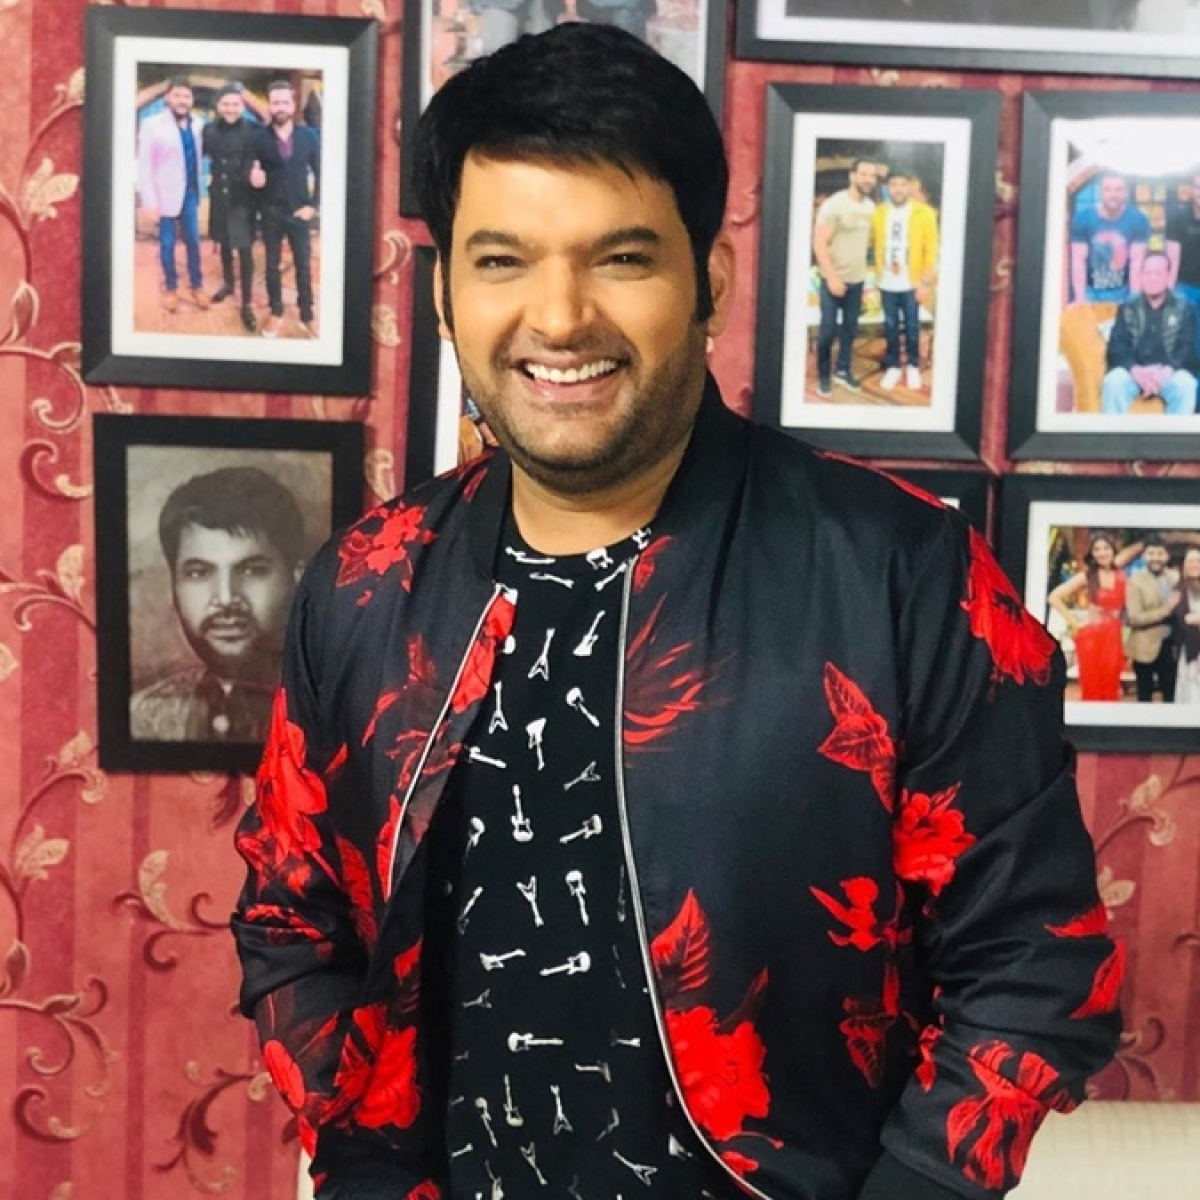 Kapil Sharma reveals his first salary as Rs 1500, says used to work at a fabric printing mill